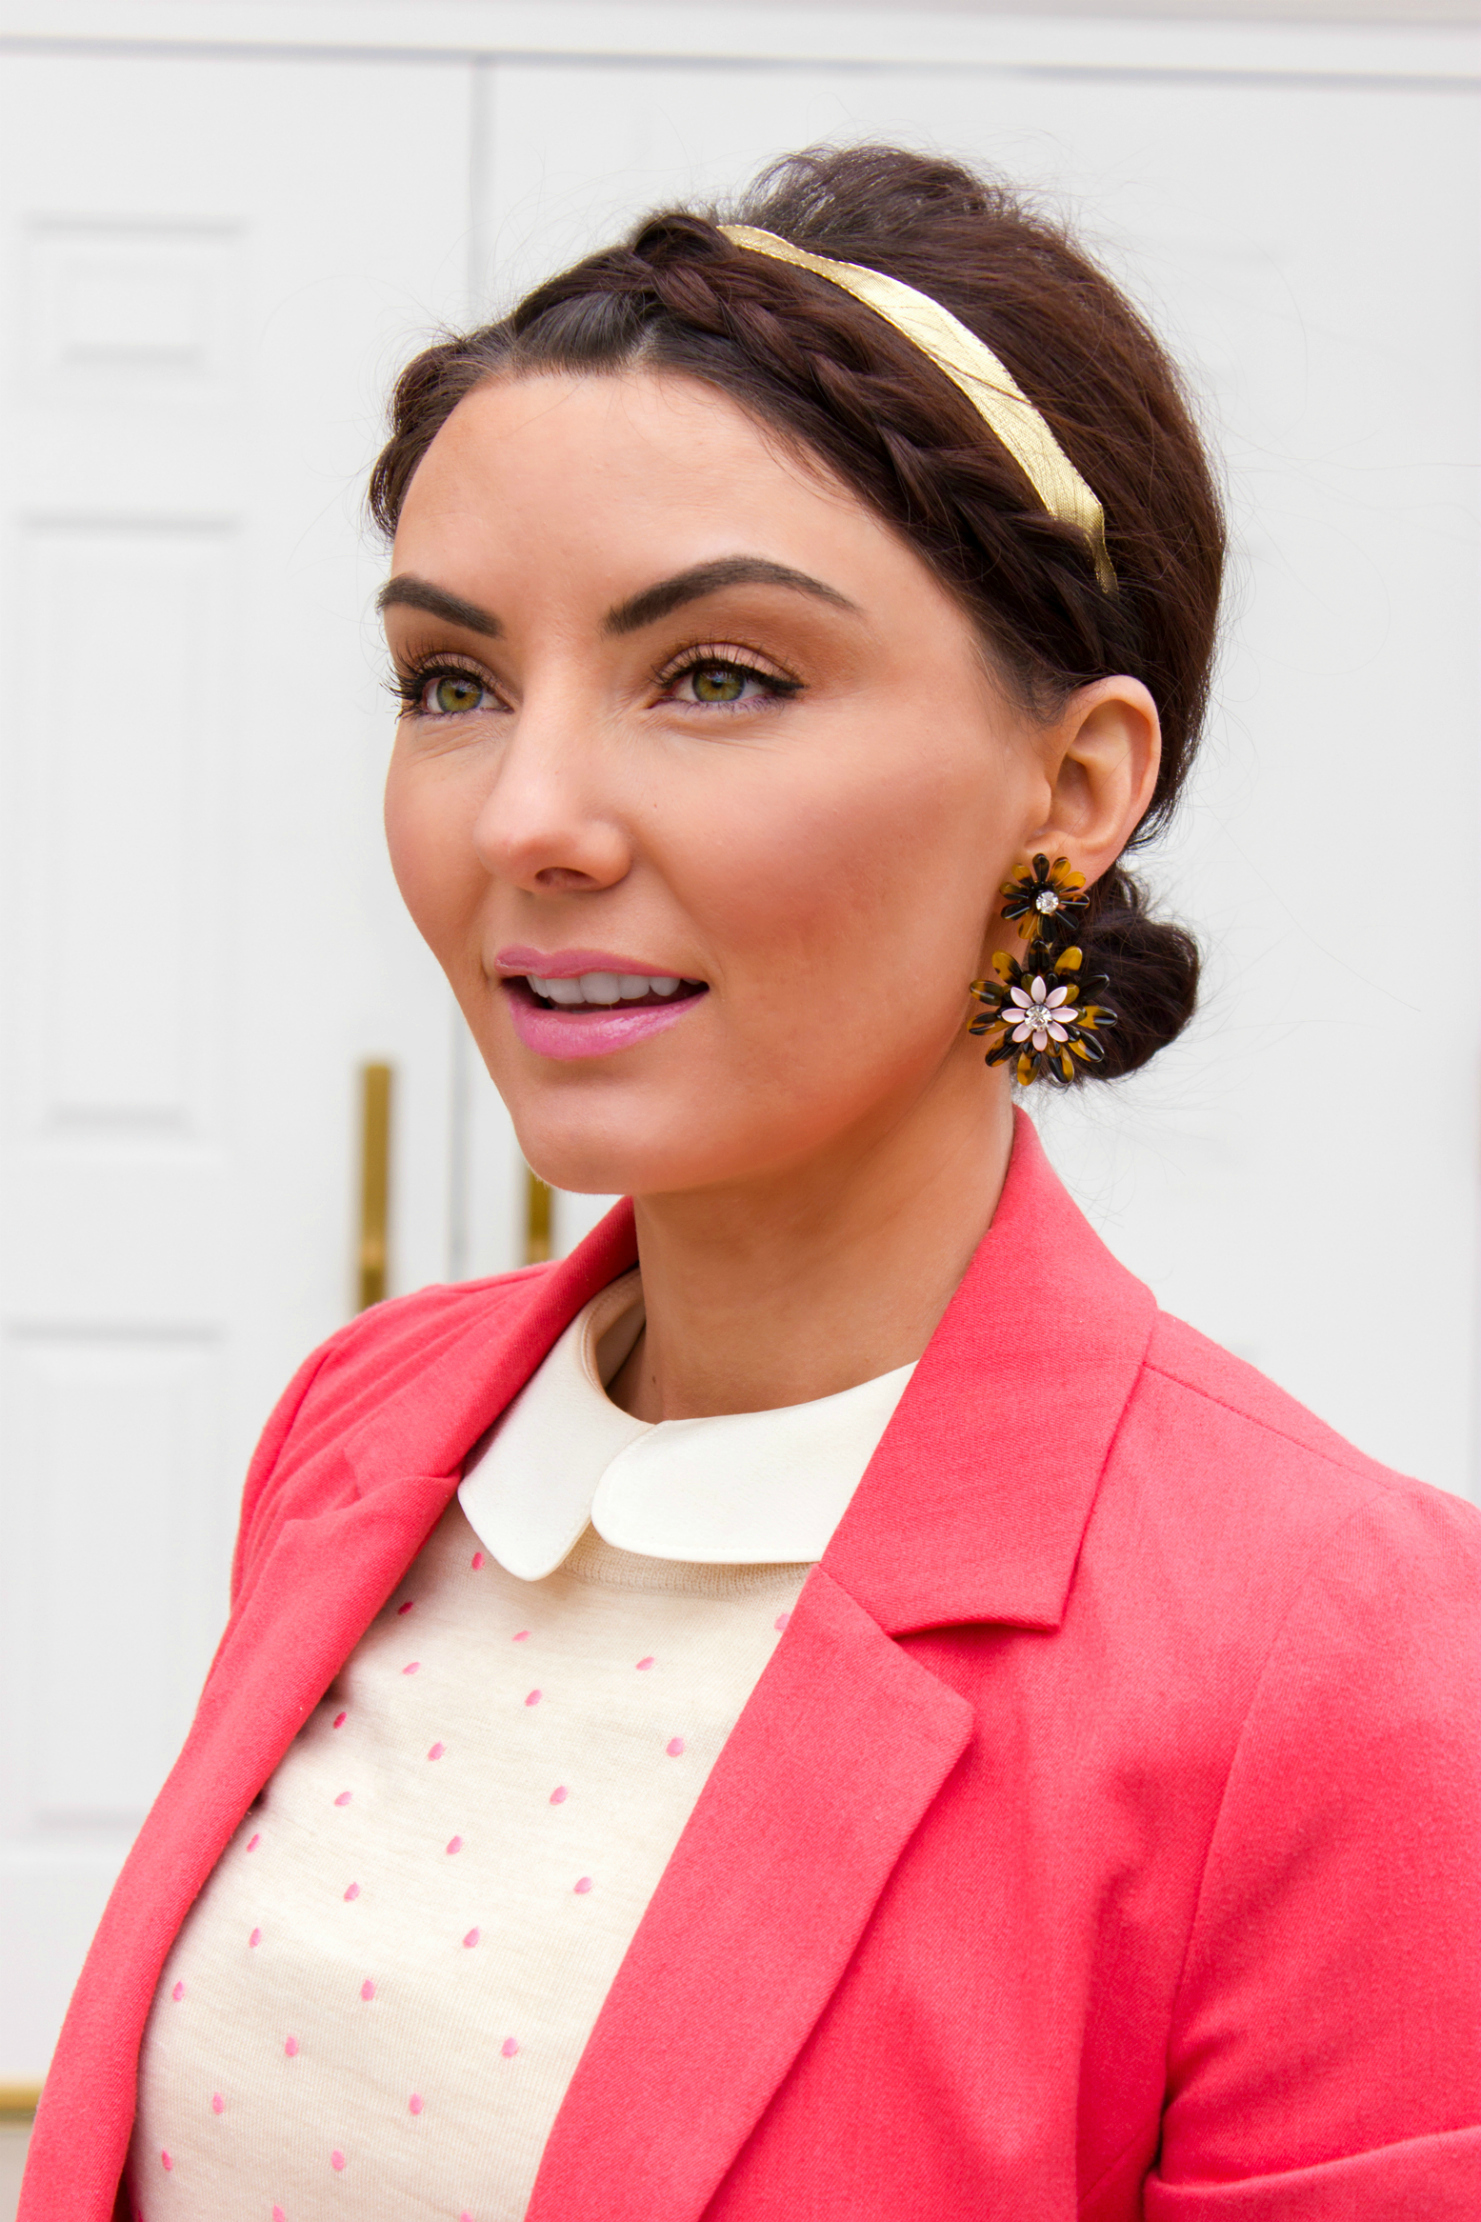 J.Crew Spring earrings